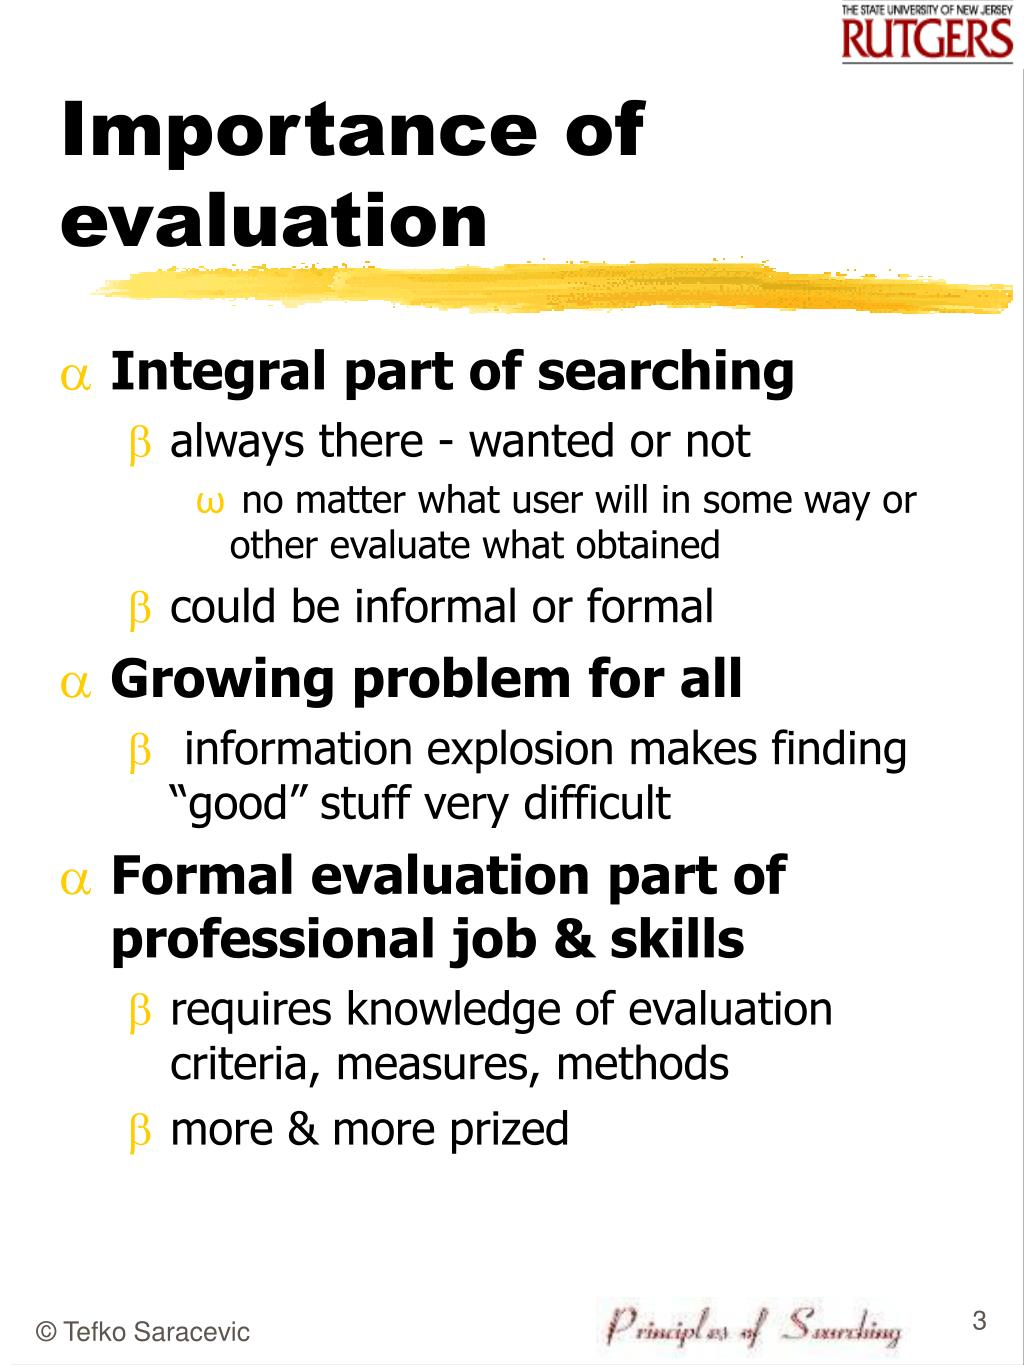 Importance of evaluation